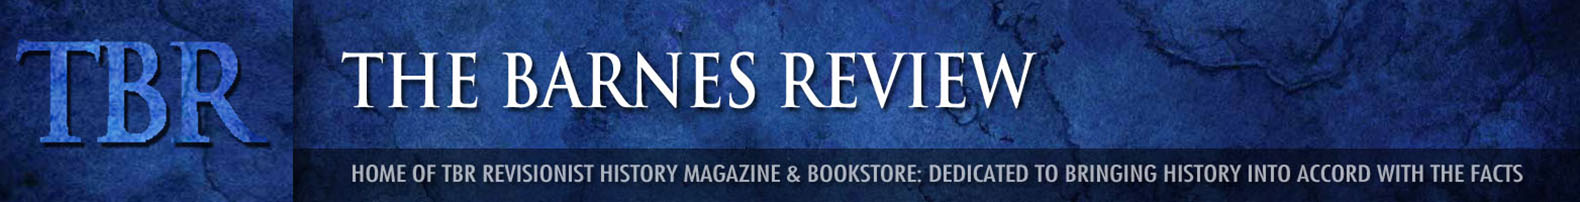 The Barnes Review